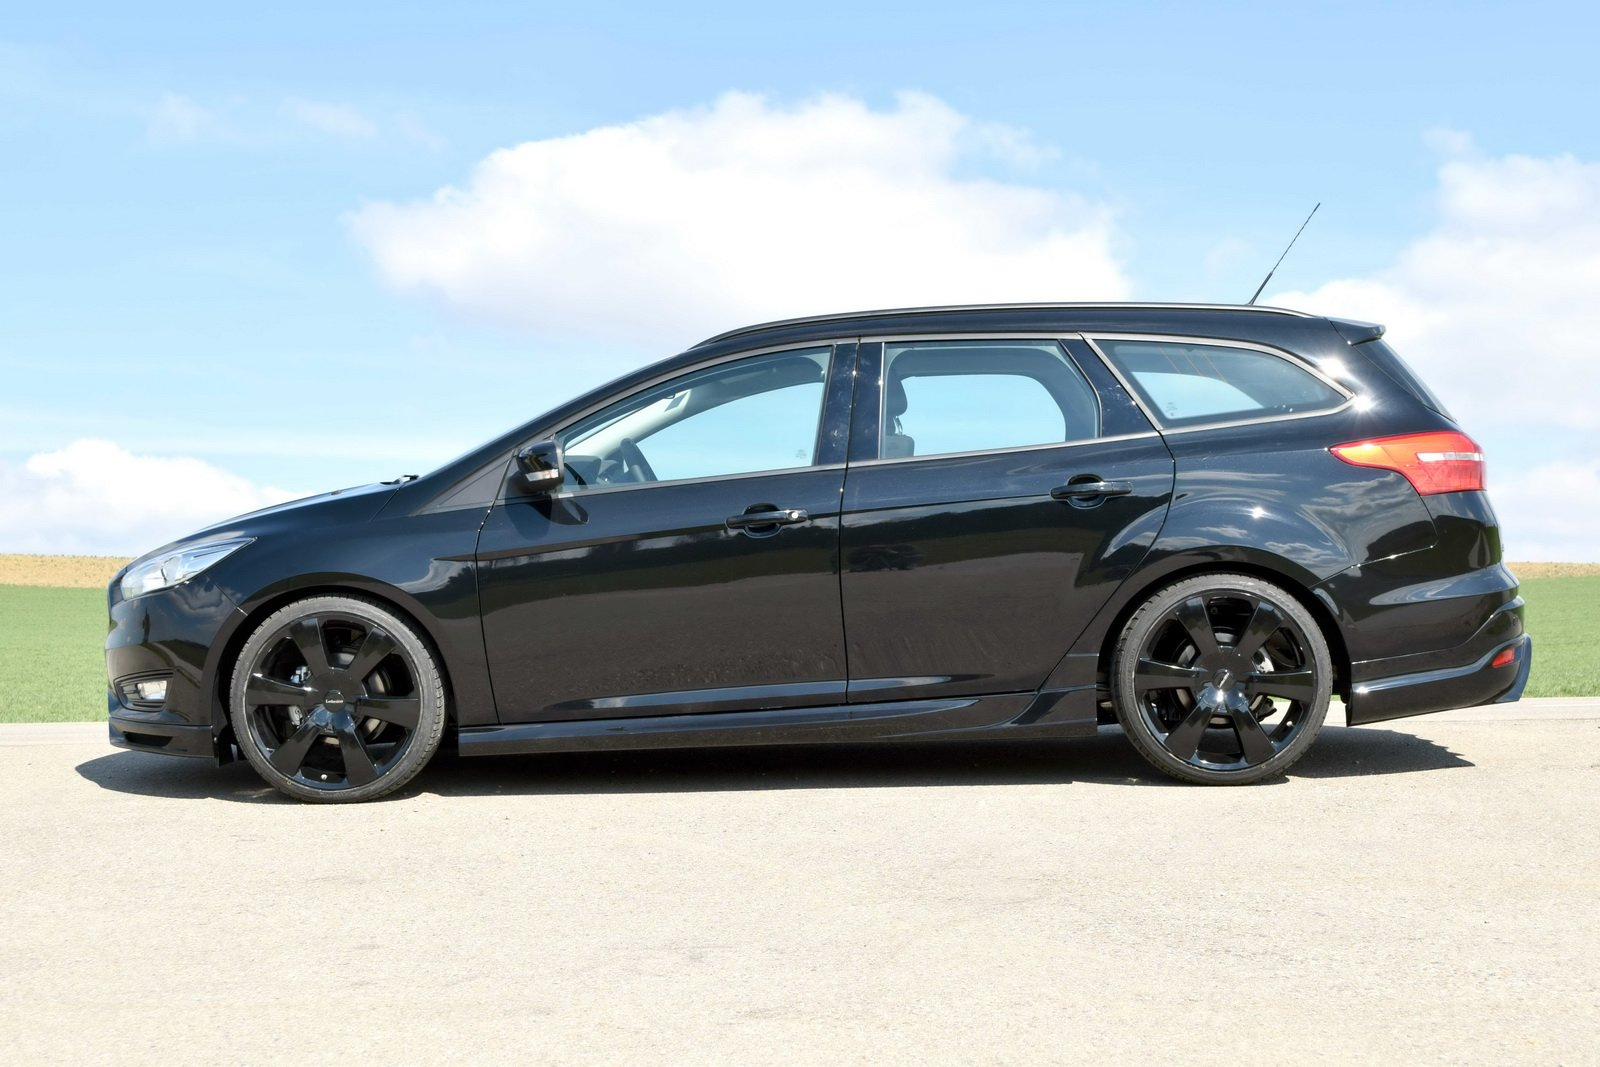 loder1899 ford focus wagon cars tuning wallpaper 1600x1067 673433 wallpaperup. Black Bedroom Furniture Sets. Home Design Ideas